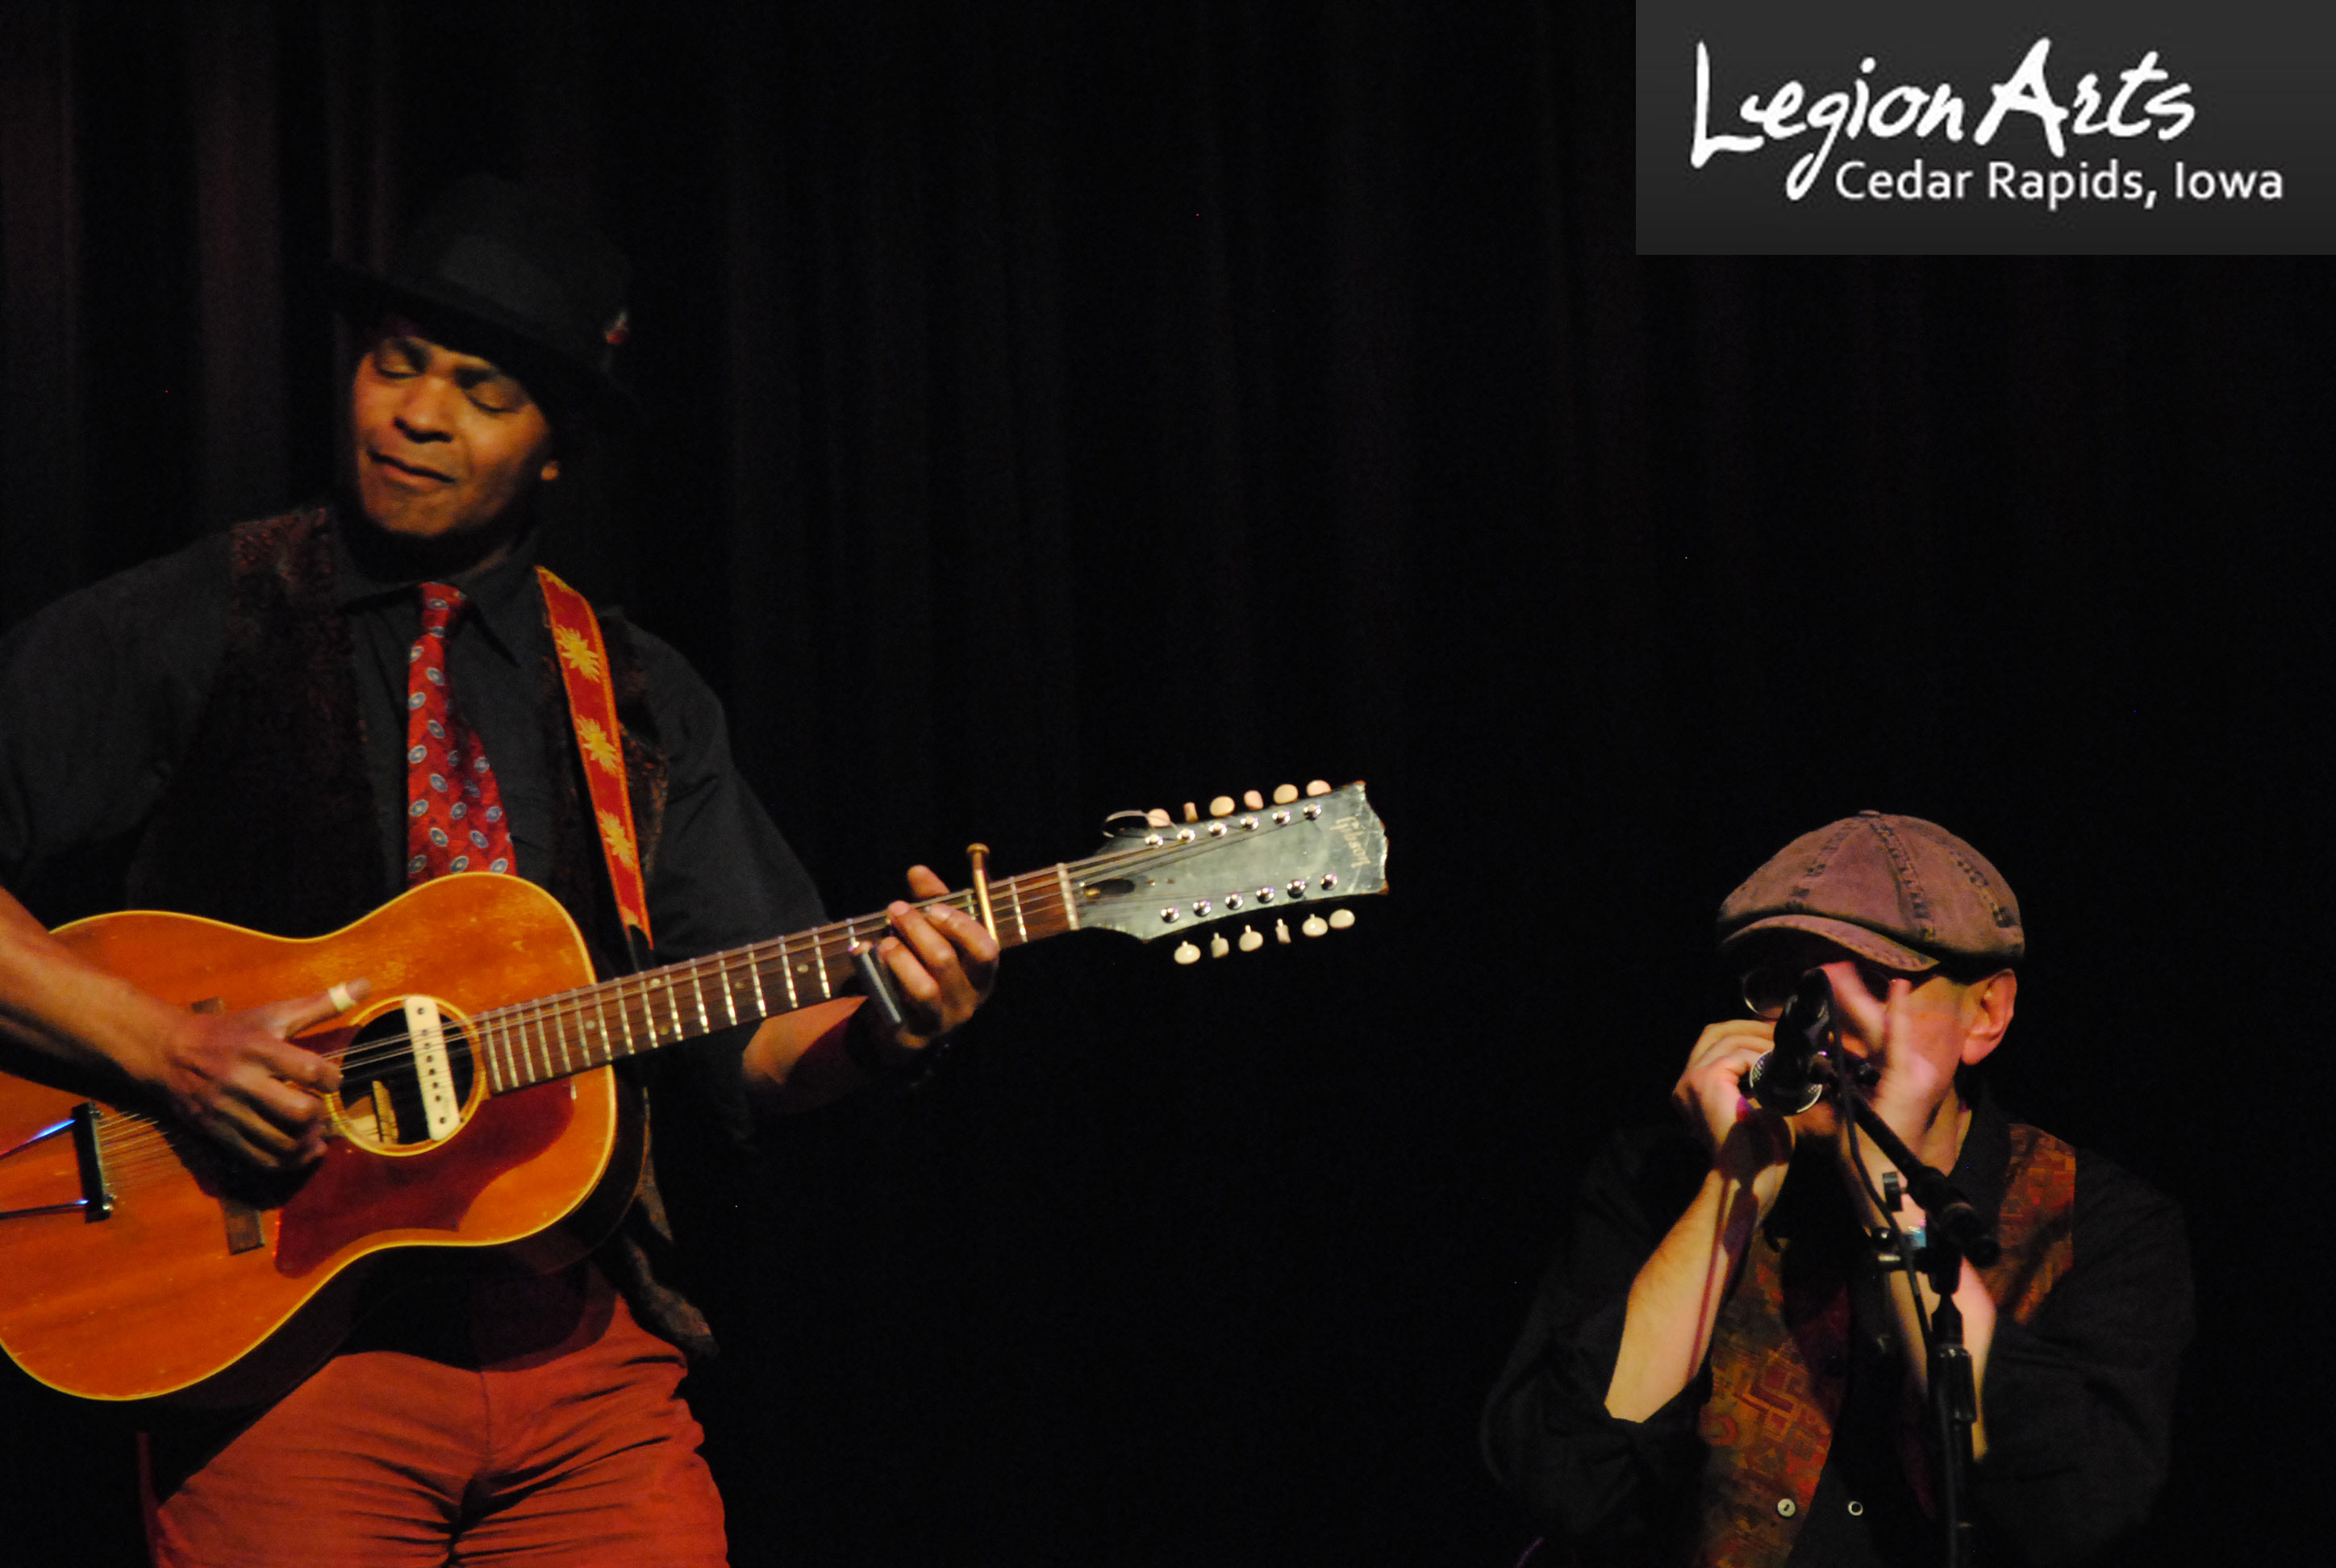 GUY DAVIS & FABRIZIO POGGI 2014 USA TOUR live at CSPS Legion Arts Cedar Rapids, Iowa